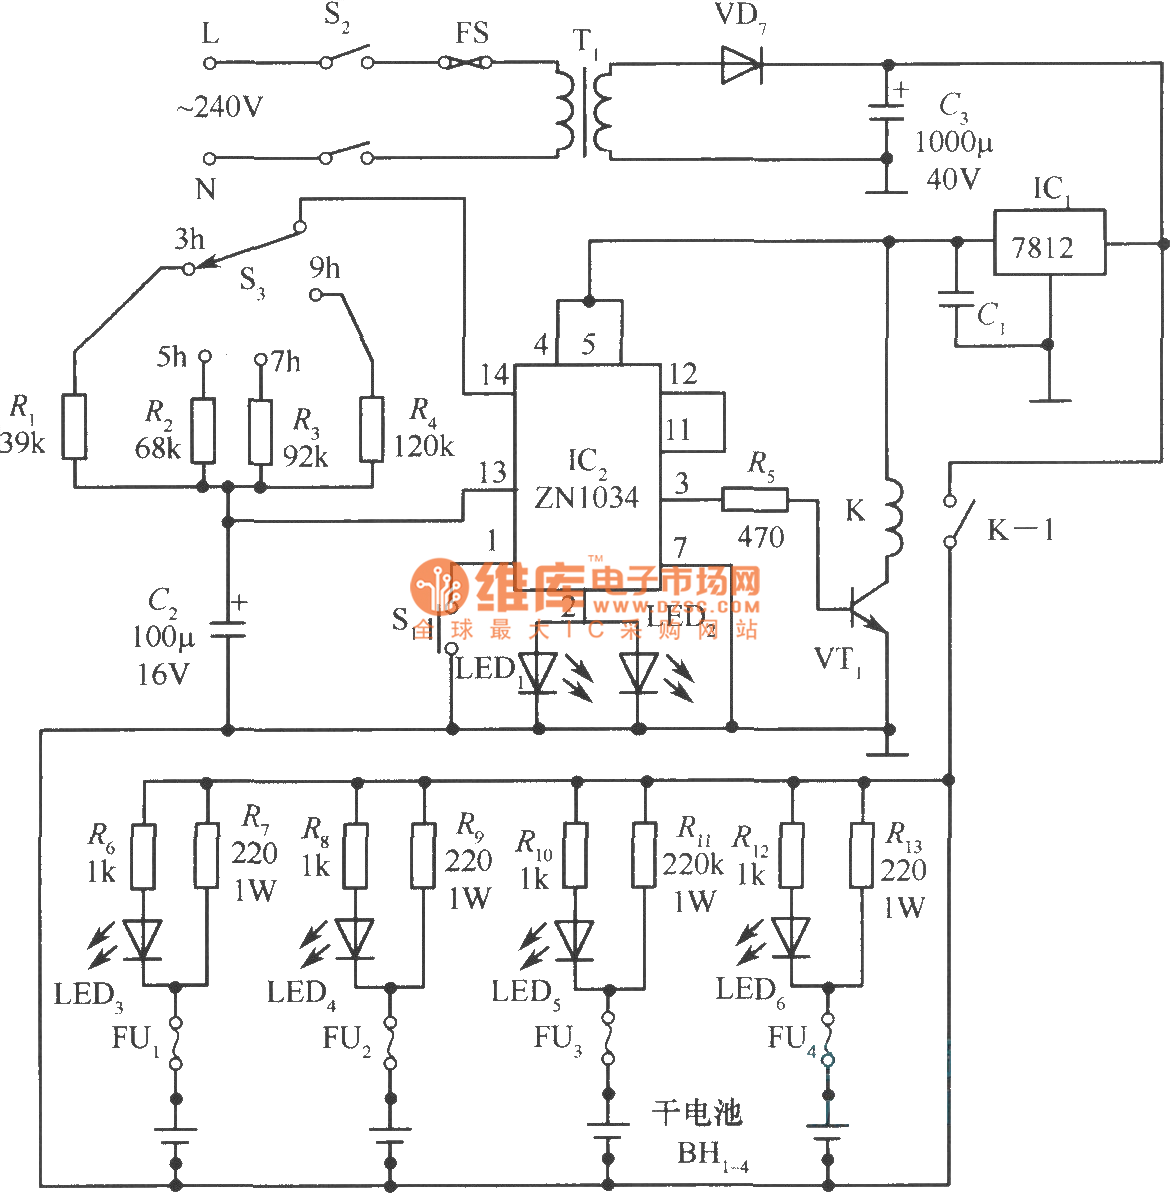 atx power supply wiring diagram wiring diagram and hernes atx 450w smps circuit diagram electronic wiring atx 24 pin power supply